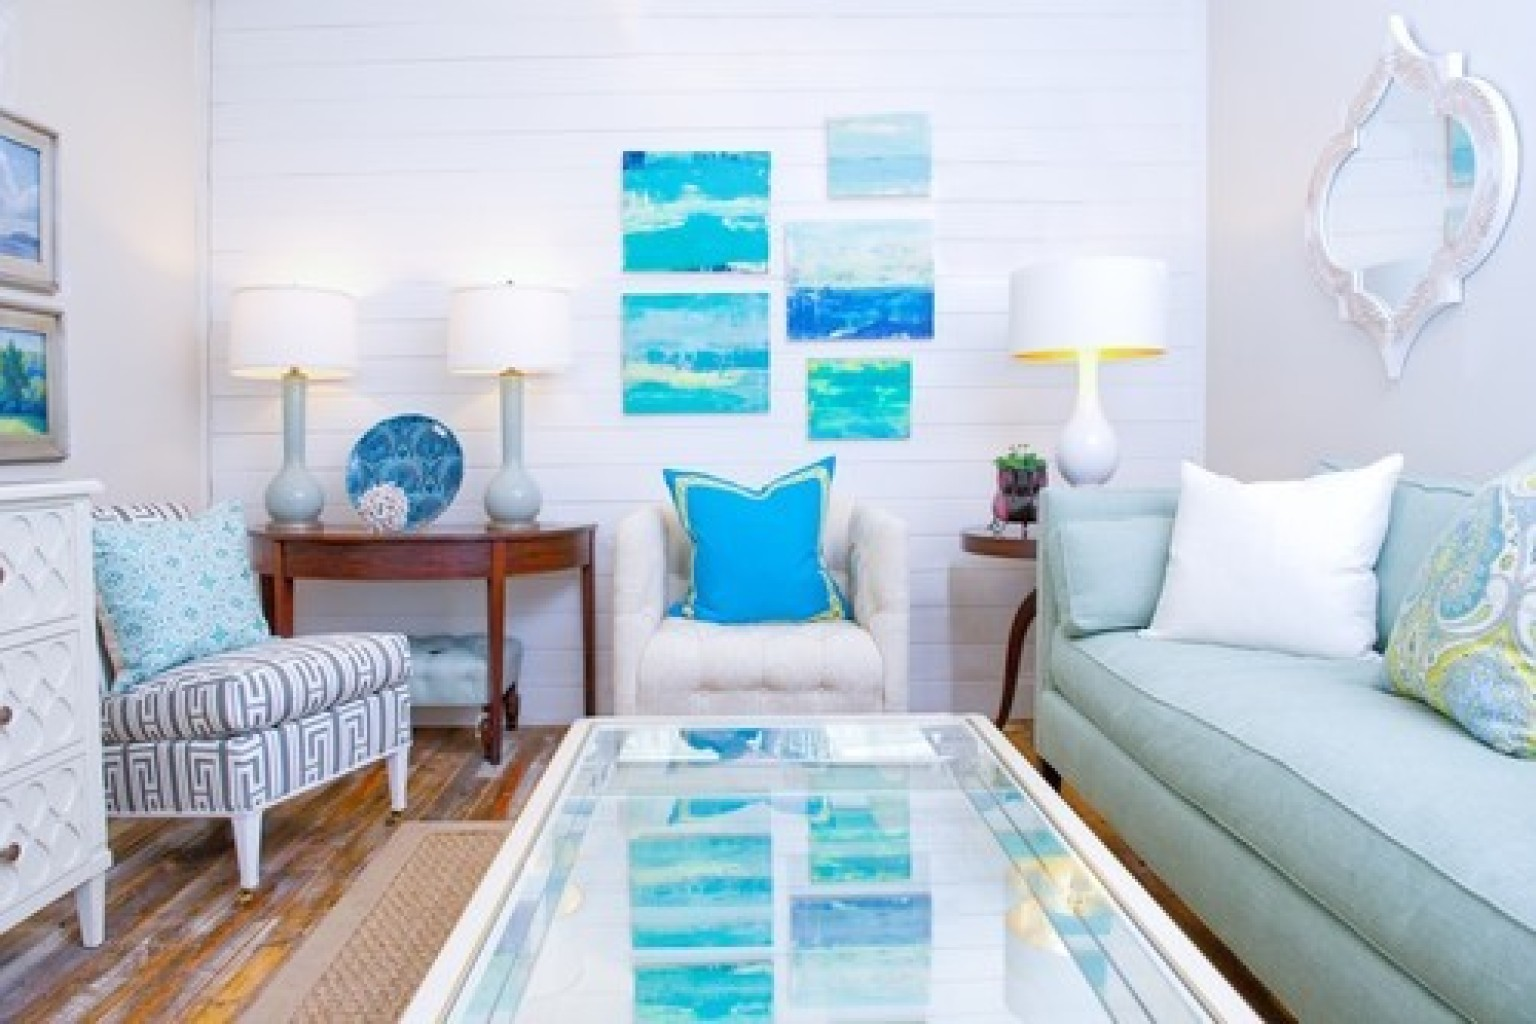 8 beach homes that don 39 t come close to making us seasick photos huffpost. Black Bedroom Furniture Sets. Home Design Ideas